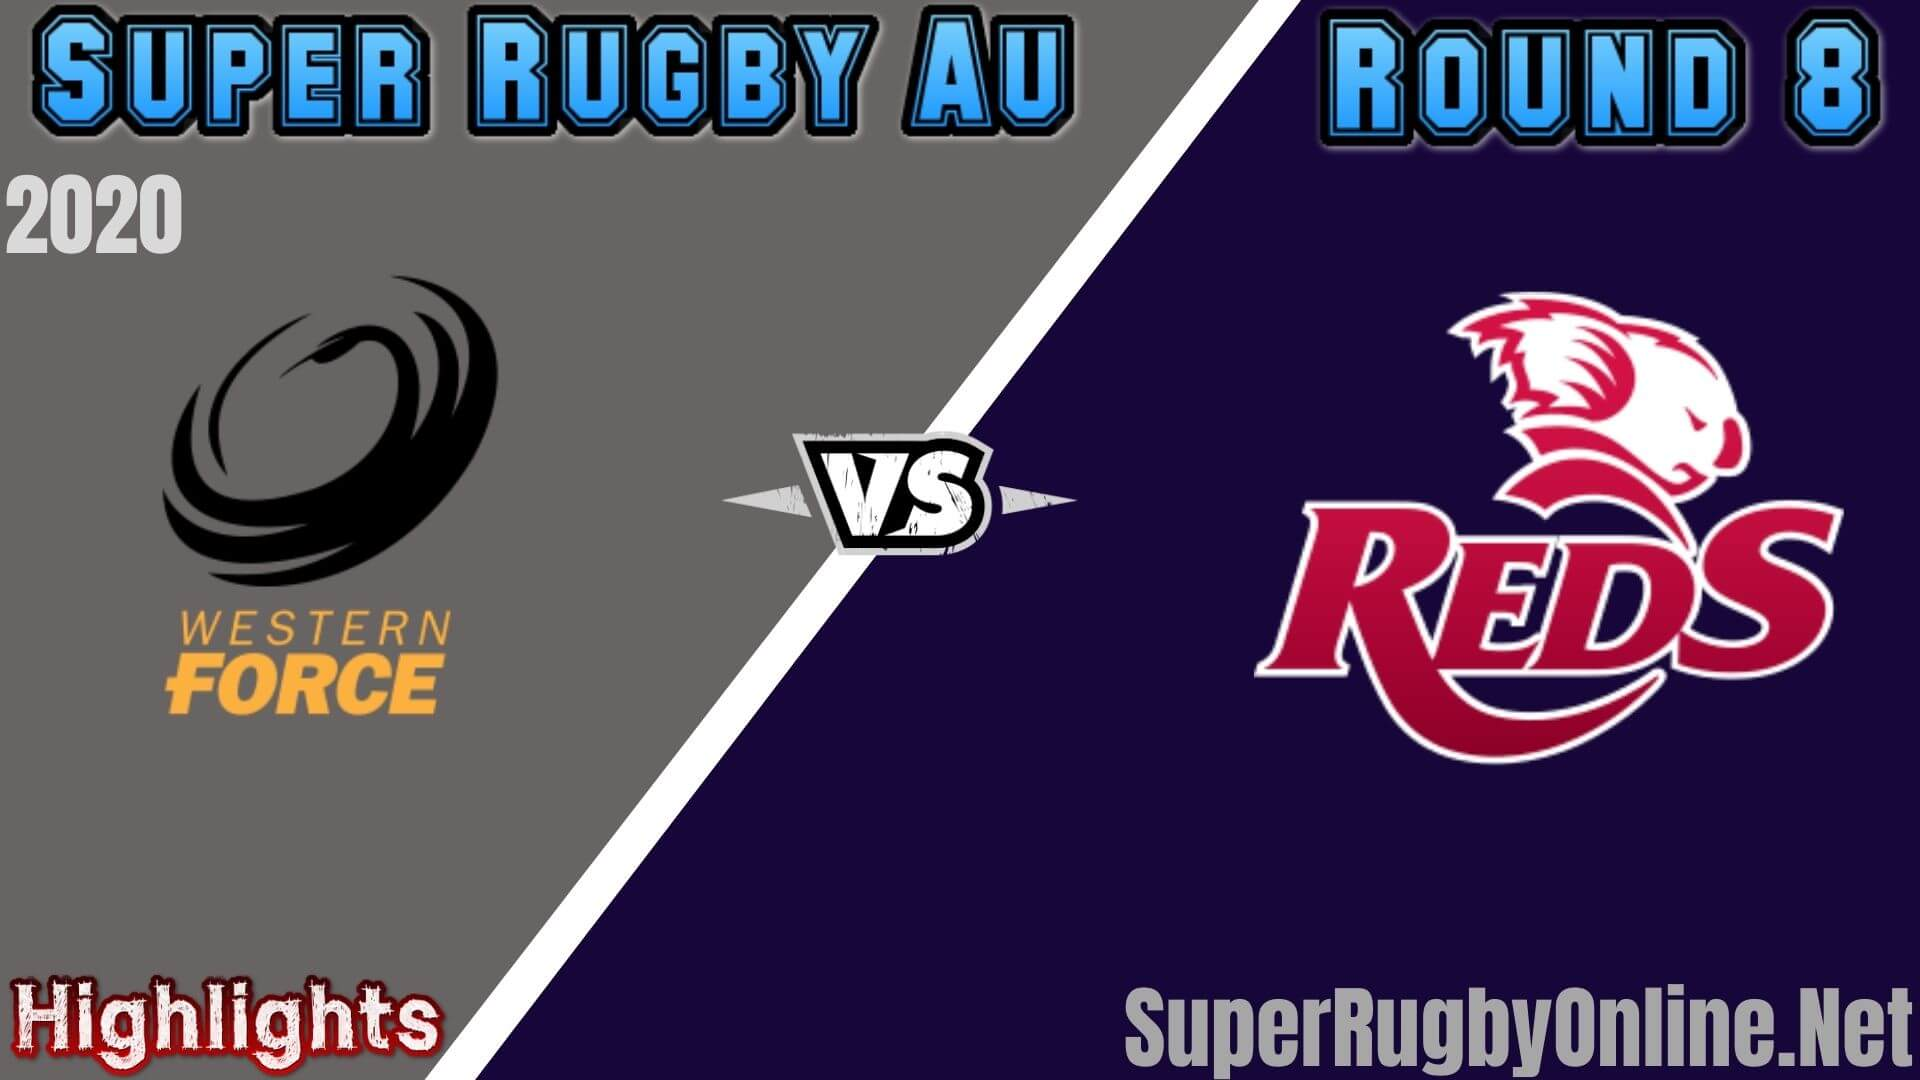 Force Vs Reds Rd 8 Highlights 2020 Super Rugby Au